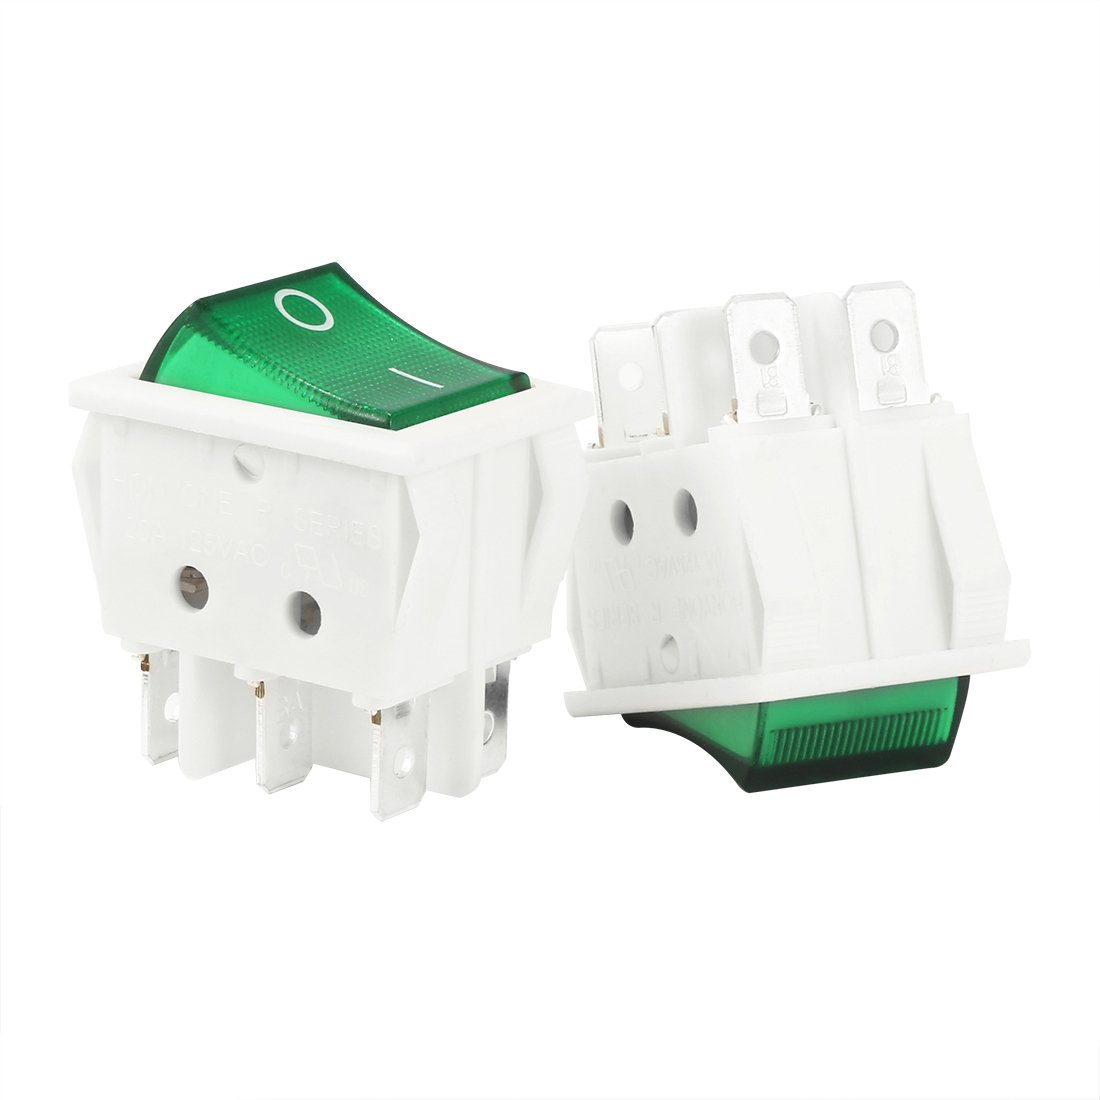 uxcell 5pcs Green Light On/Off SPDT Boat Rocker Switch 22A/250V 20A/125V AC a14062700ux0373